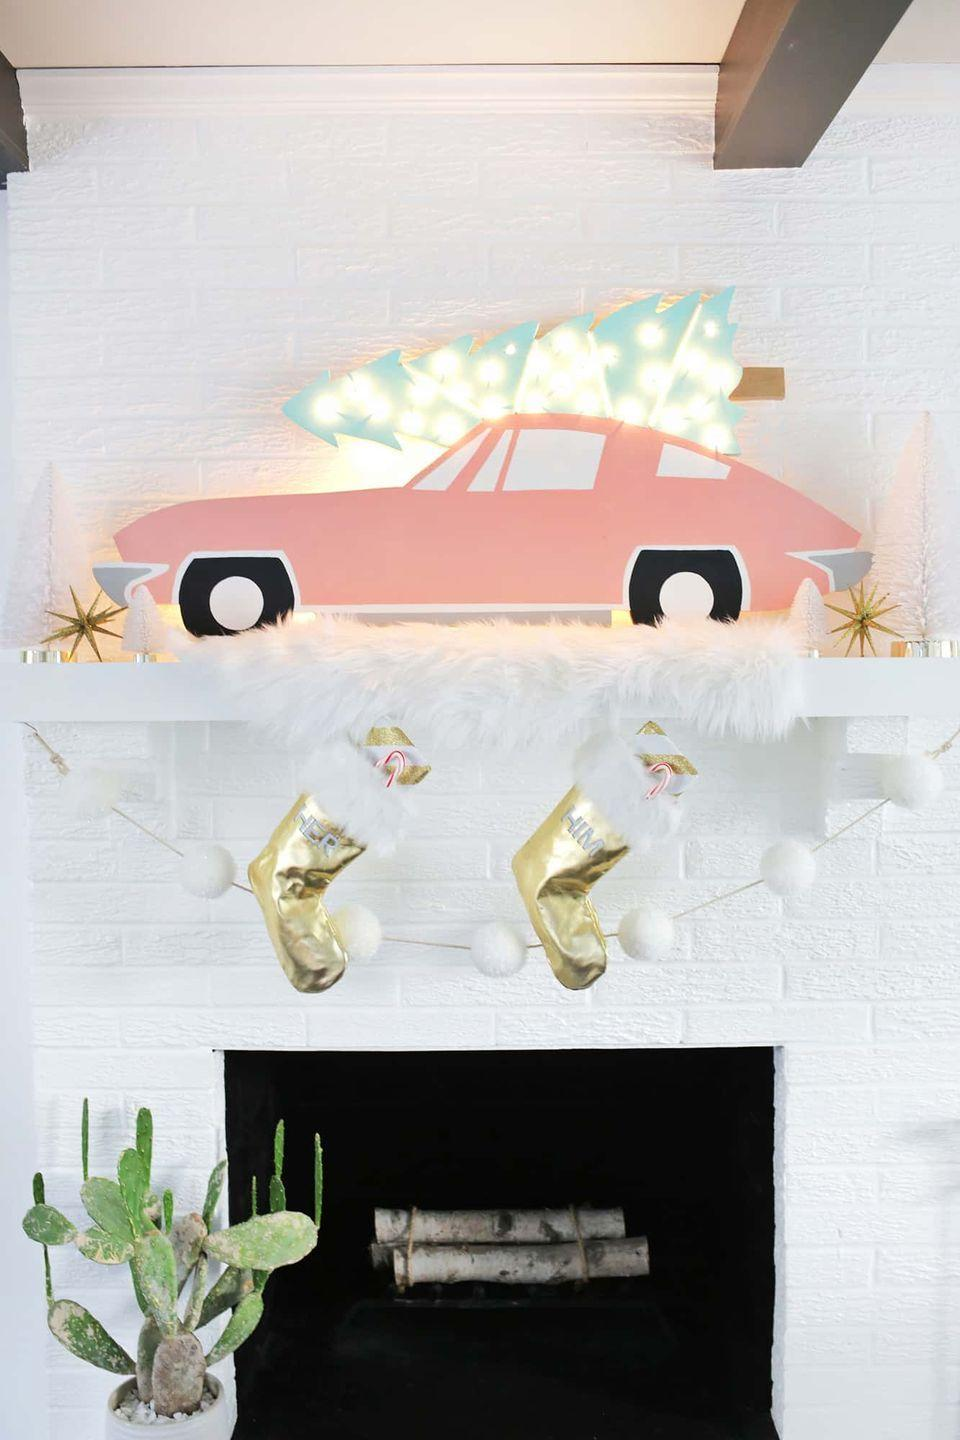 "<p>For a playful touch that's truly unique, create your very own retro marquee featuring a pink sports car carrying a lit Christmas tree. Complete the look with a sheepskin blanket, a pom-pom garland, and metallic accessories. </p><p><em>Get the tutorial at <a href=""https://abeautifulmess.com/vintage-car-christmas-tree-marquee/"" rel=""nofollow noopener"" target=""_blank"" data-ylk=""slk:A Beautiful Mess"" class=""link rapid-noclick-resp"">A Beautiful Mess</a>.</em></p><p><a class=""link rapid-noclick-resp"" href=""https://www.amazon.com/Prextex-Christmas-Clear-White-Decorations/dp/B075MNL1RW?tag=syn-yahoo-20&ascsubtag=%5Bartid%7C10072.g.34484299%5Bsrc%7Cyahoo-us"" rel=""nofollow noopener"" target=""_blank"" data-ylk=""slk:SHOP STRING LIGHTS"">SHOP STRING LIGHTS</a></p>"